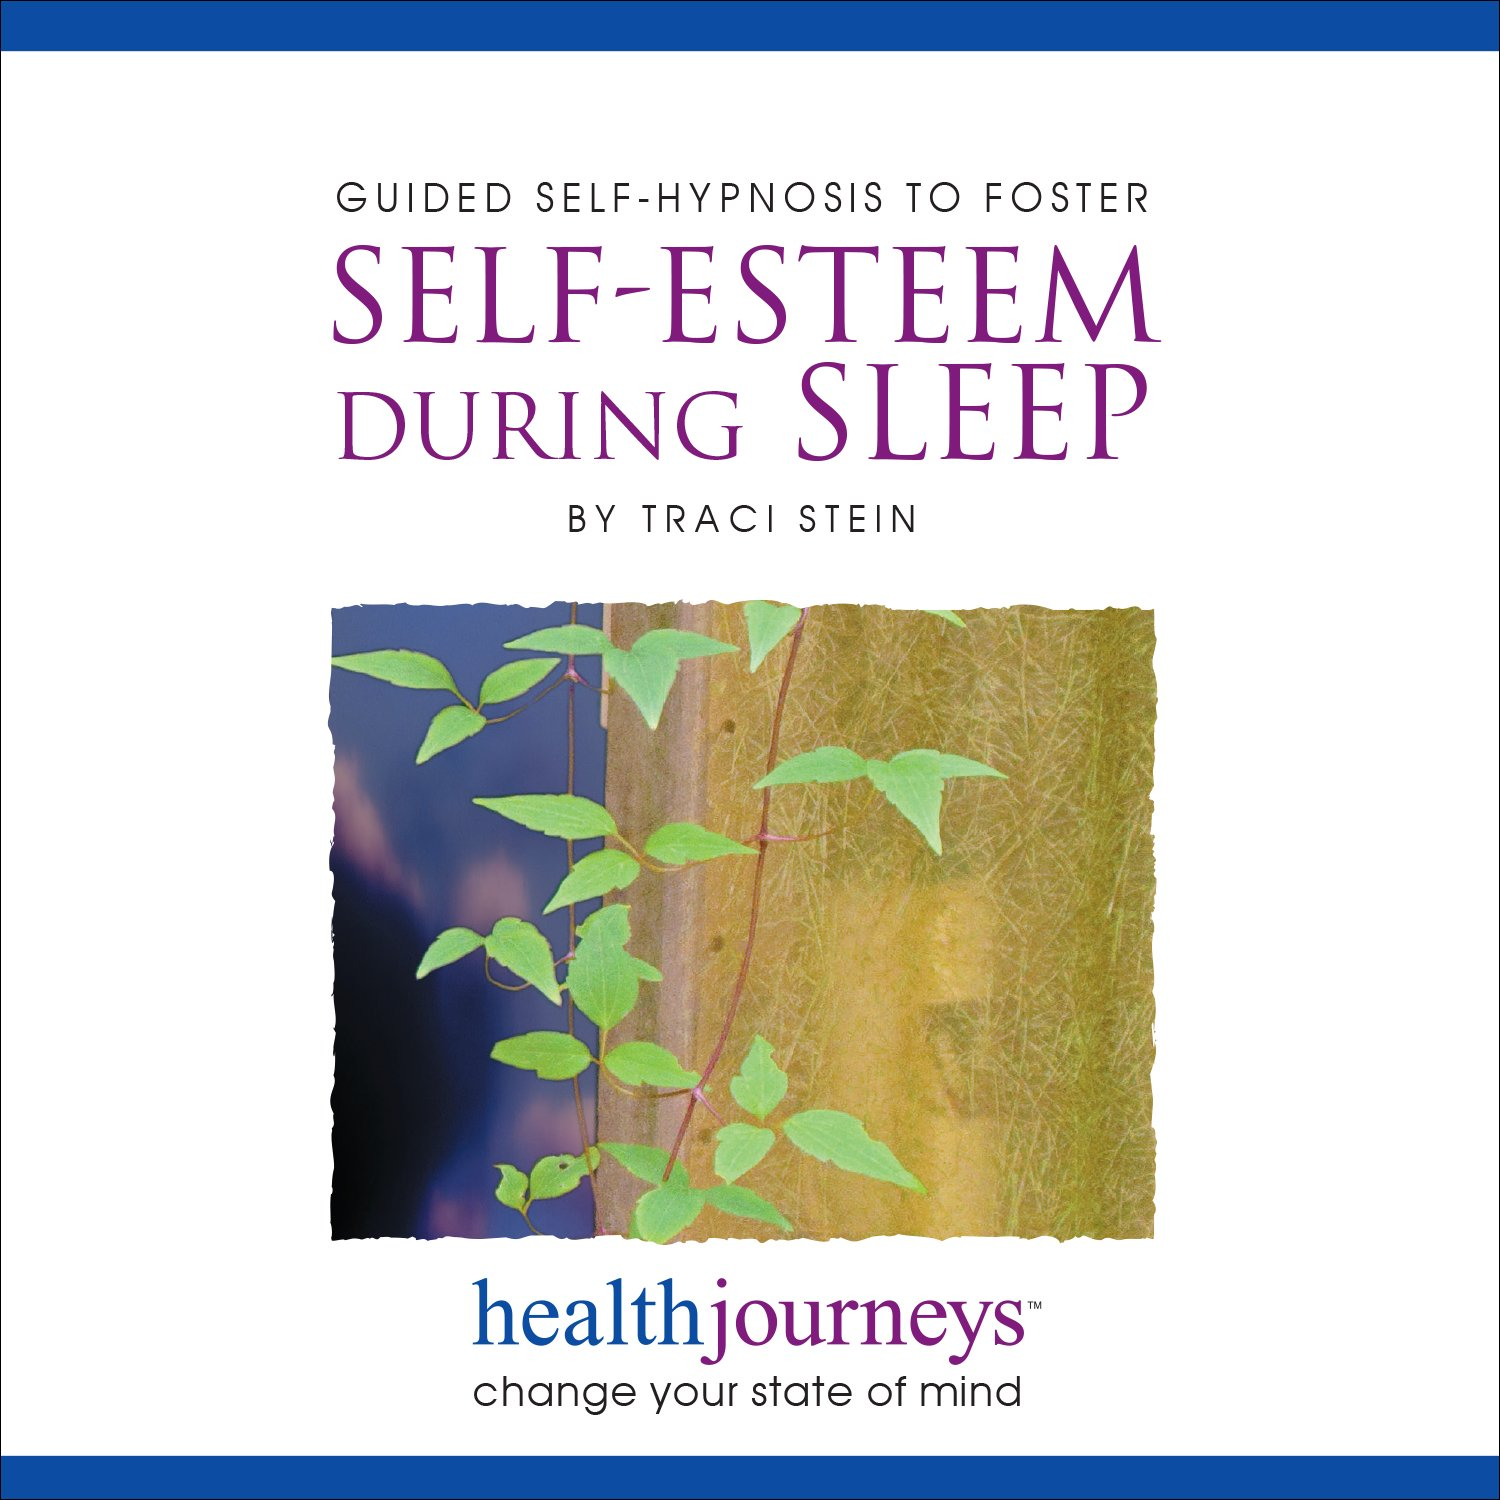 Guided Self Hypnosis to Foster Self-Esteem During Sleep, Meditations to Foster Self Worth, State of the Art Hypnotic Techniques to Foster a Stronger, More Confident Sense of Self During Deep, Restorative Sleep, Improve Self Esteem and Self Worth with Heal